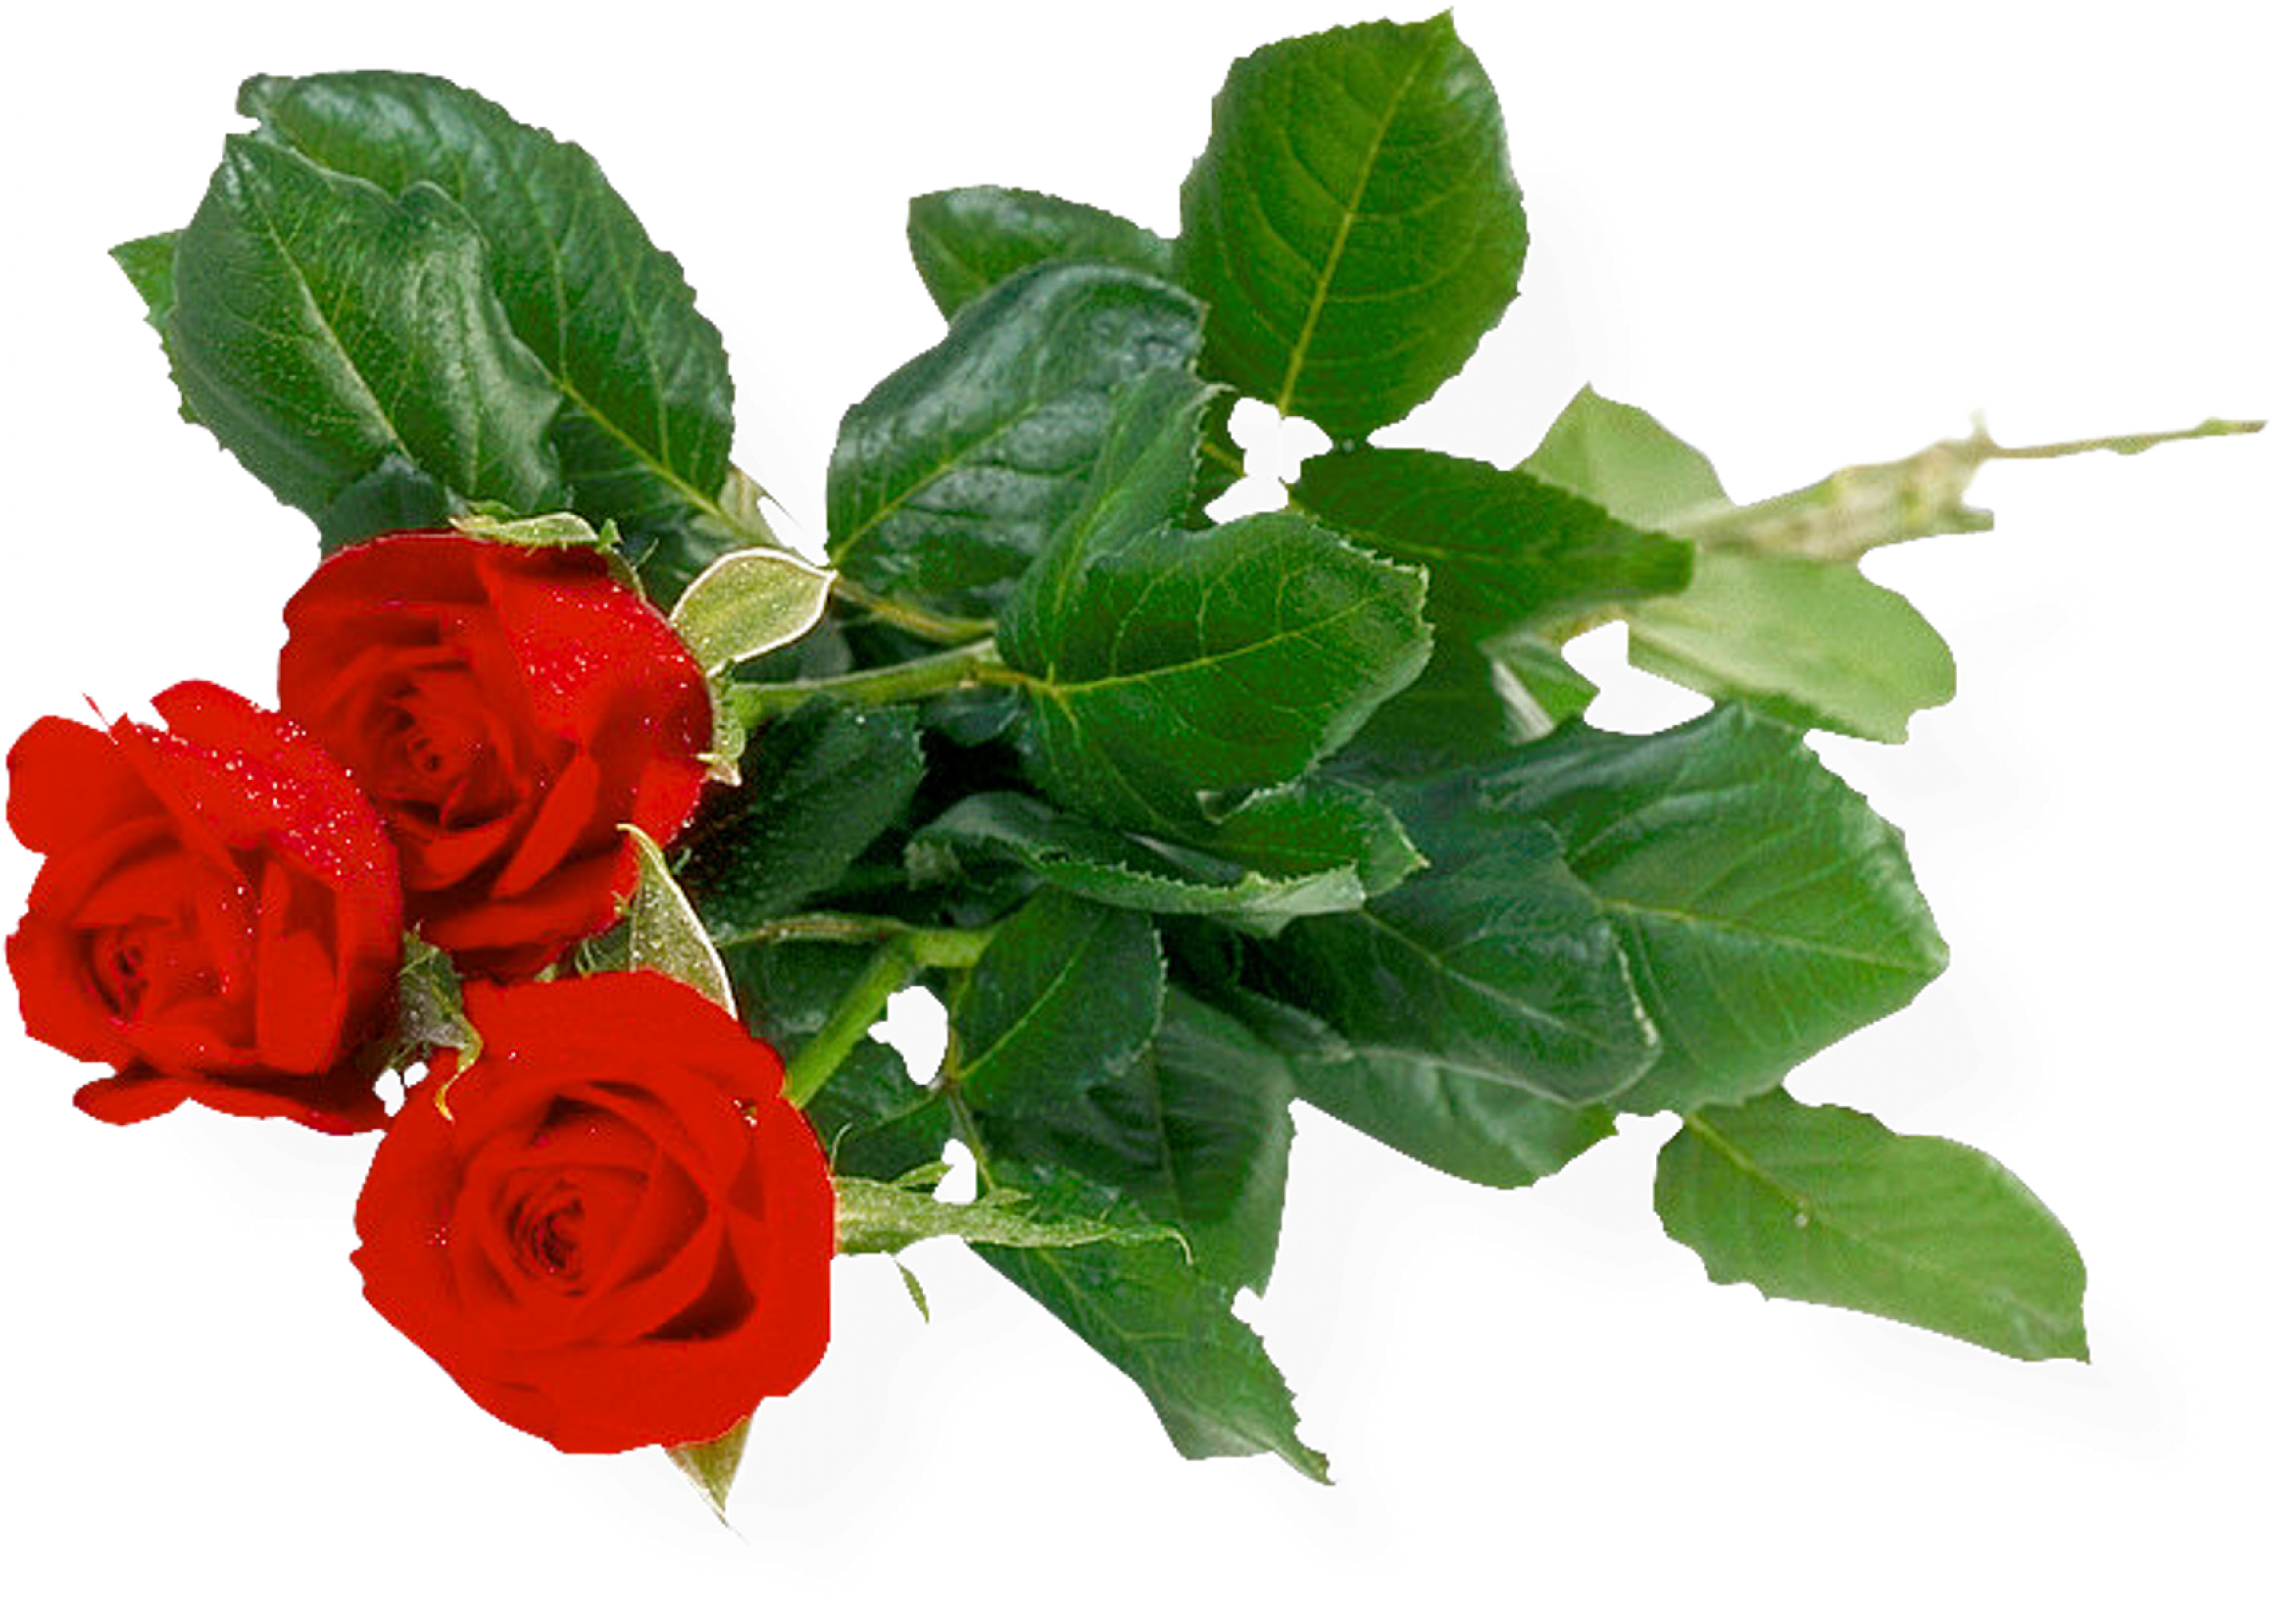 Download free flowers pictures jpg Rose PNG flower images, free download jpg